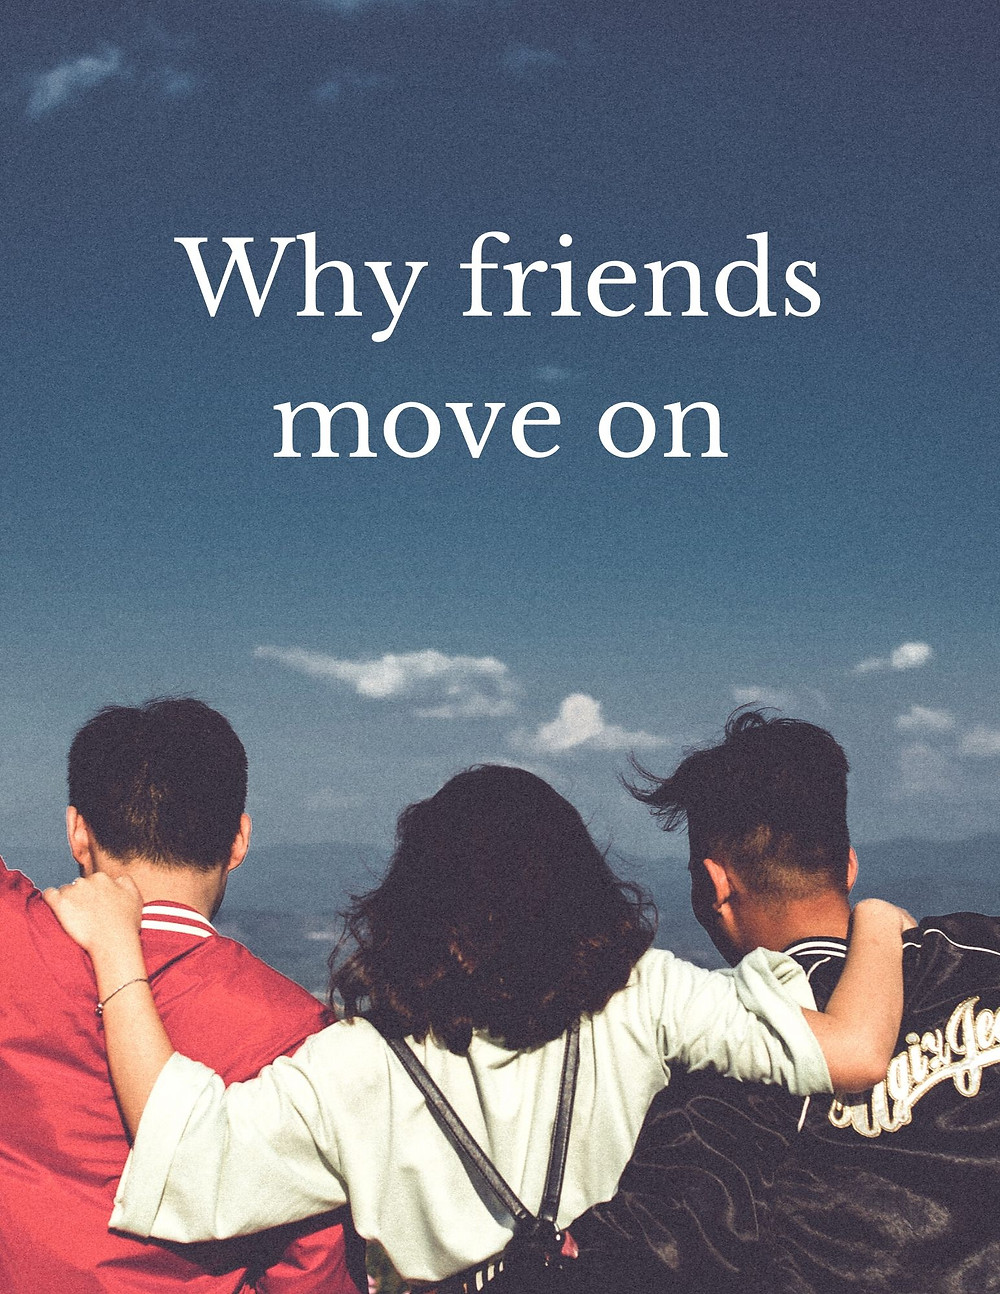 Why friends move on